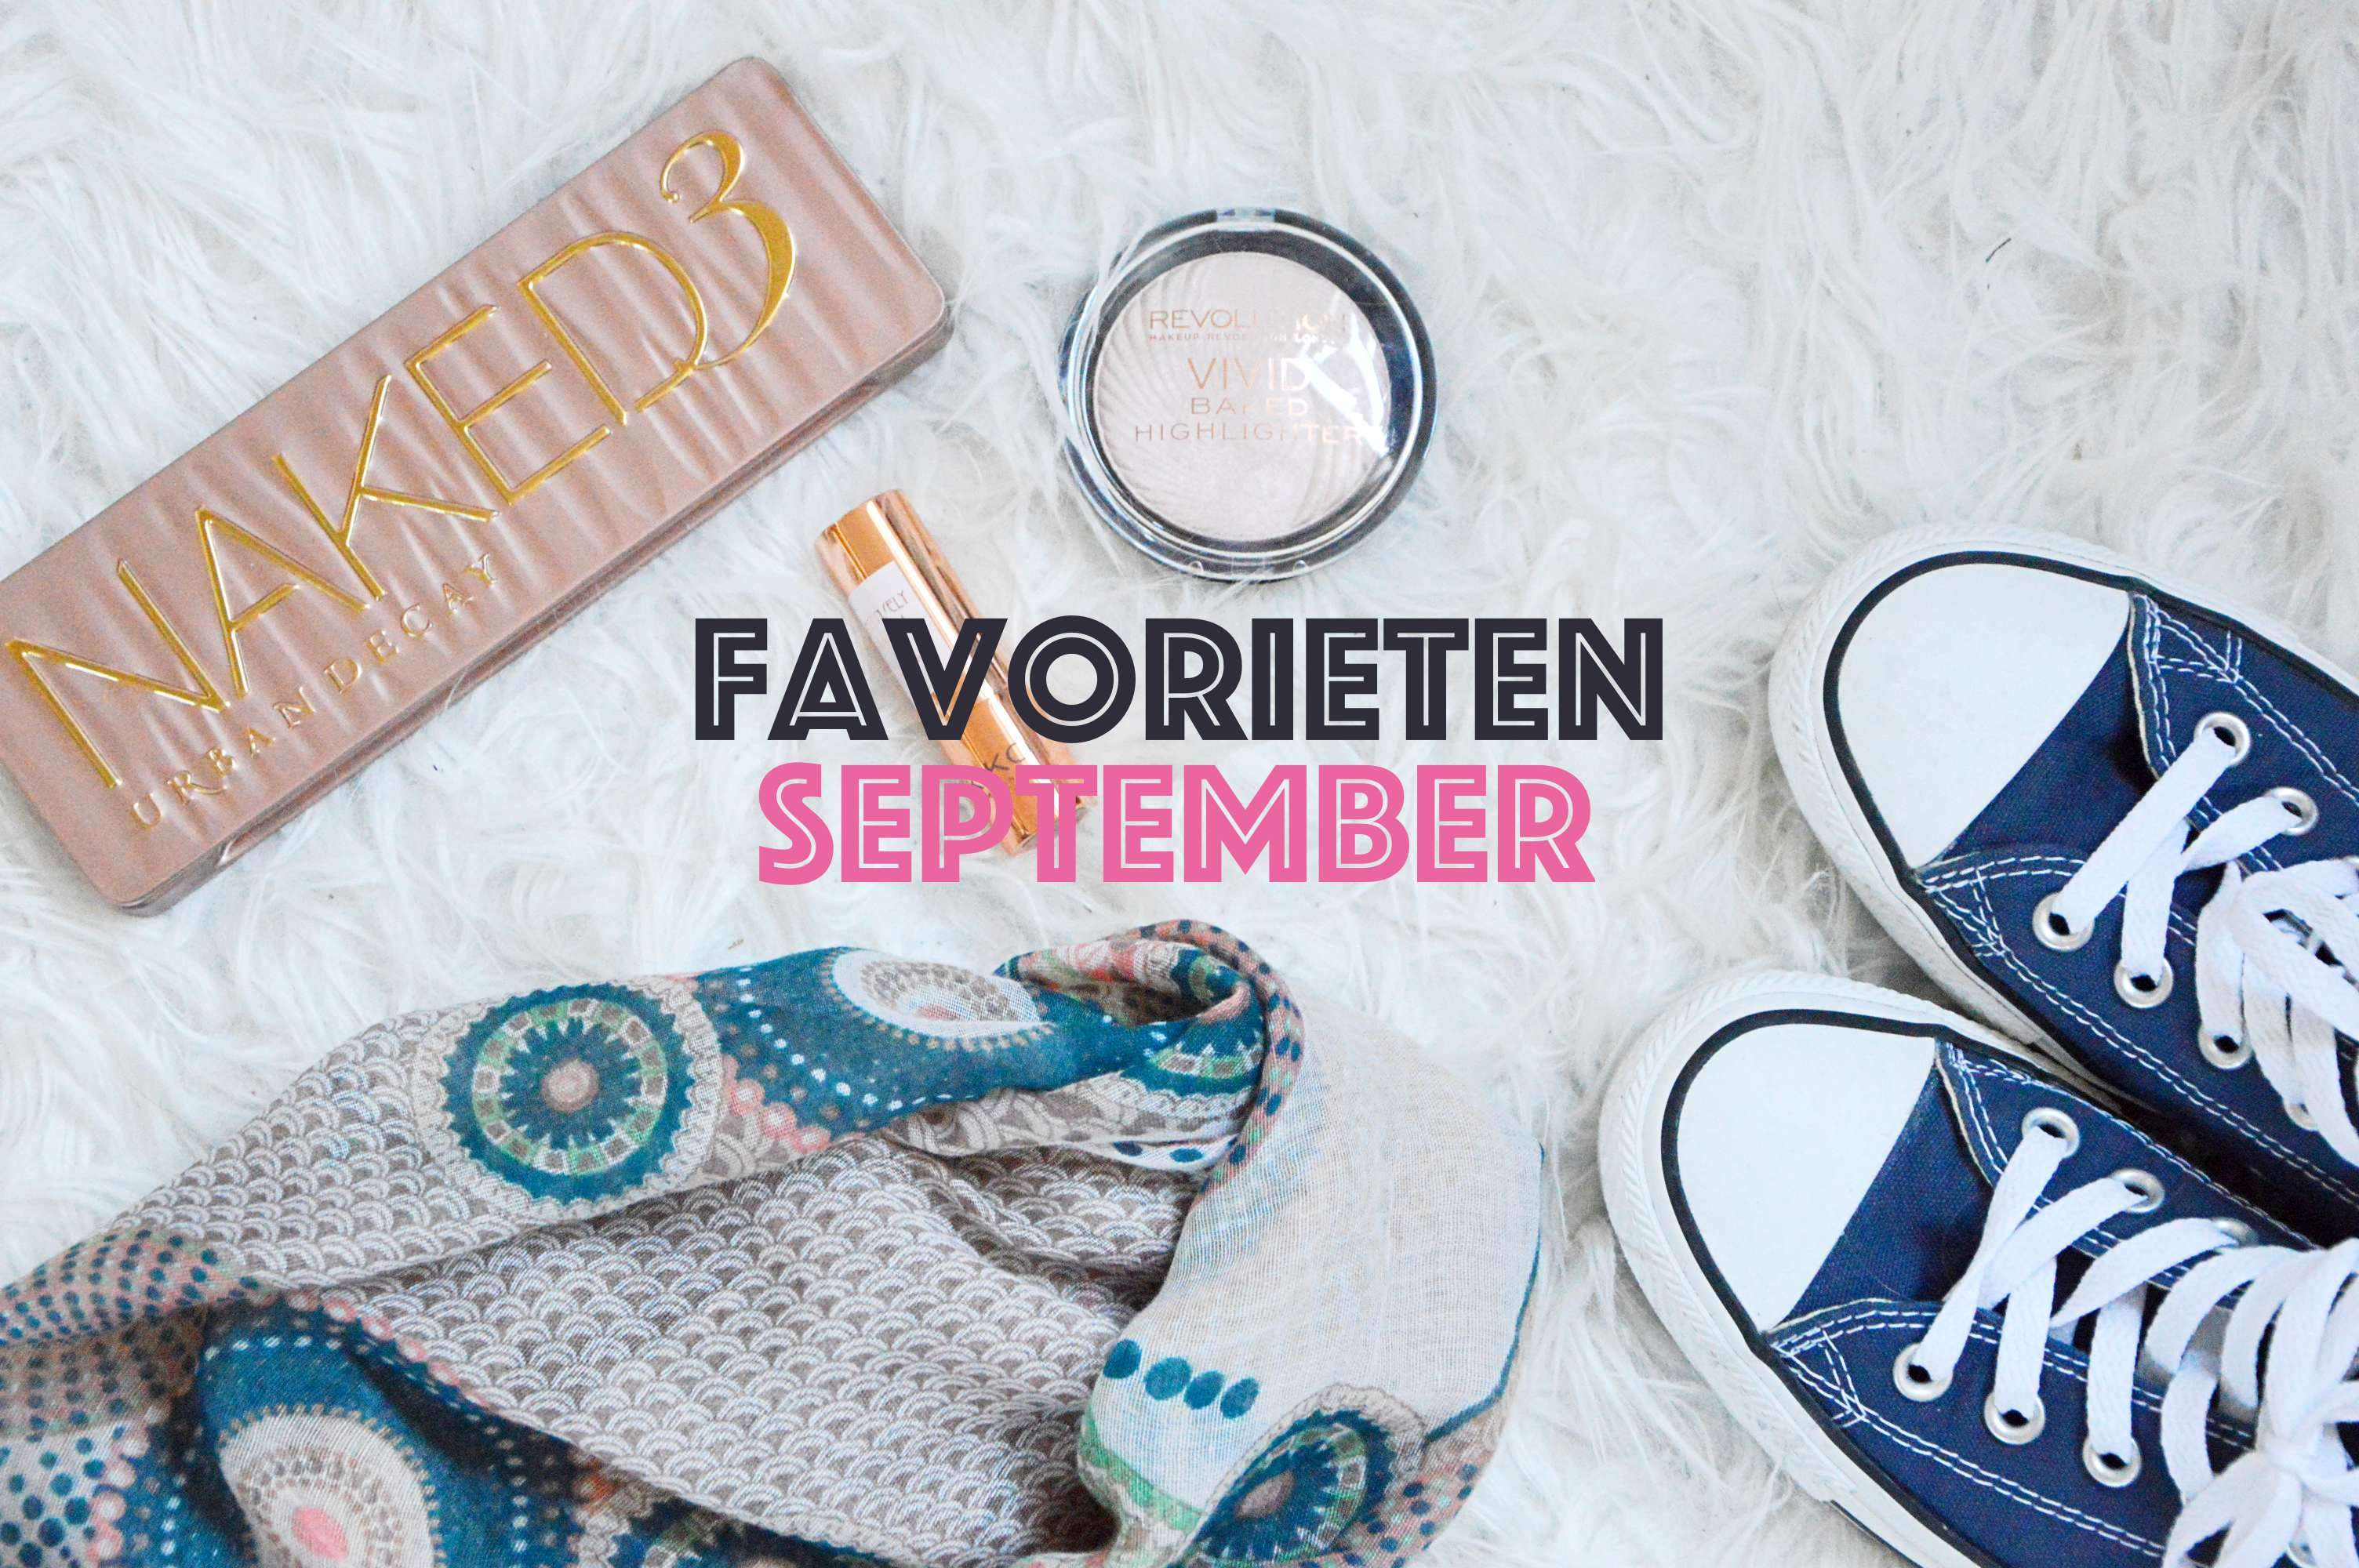 favorieten september